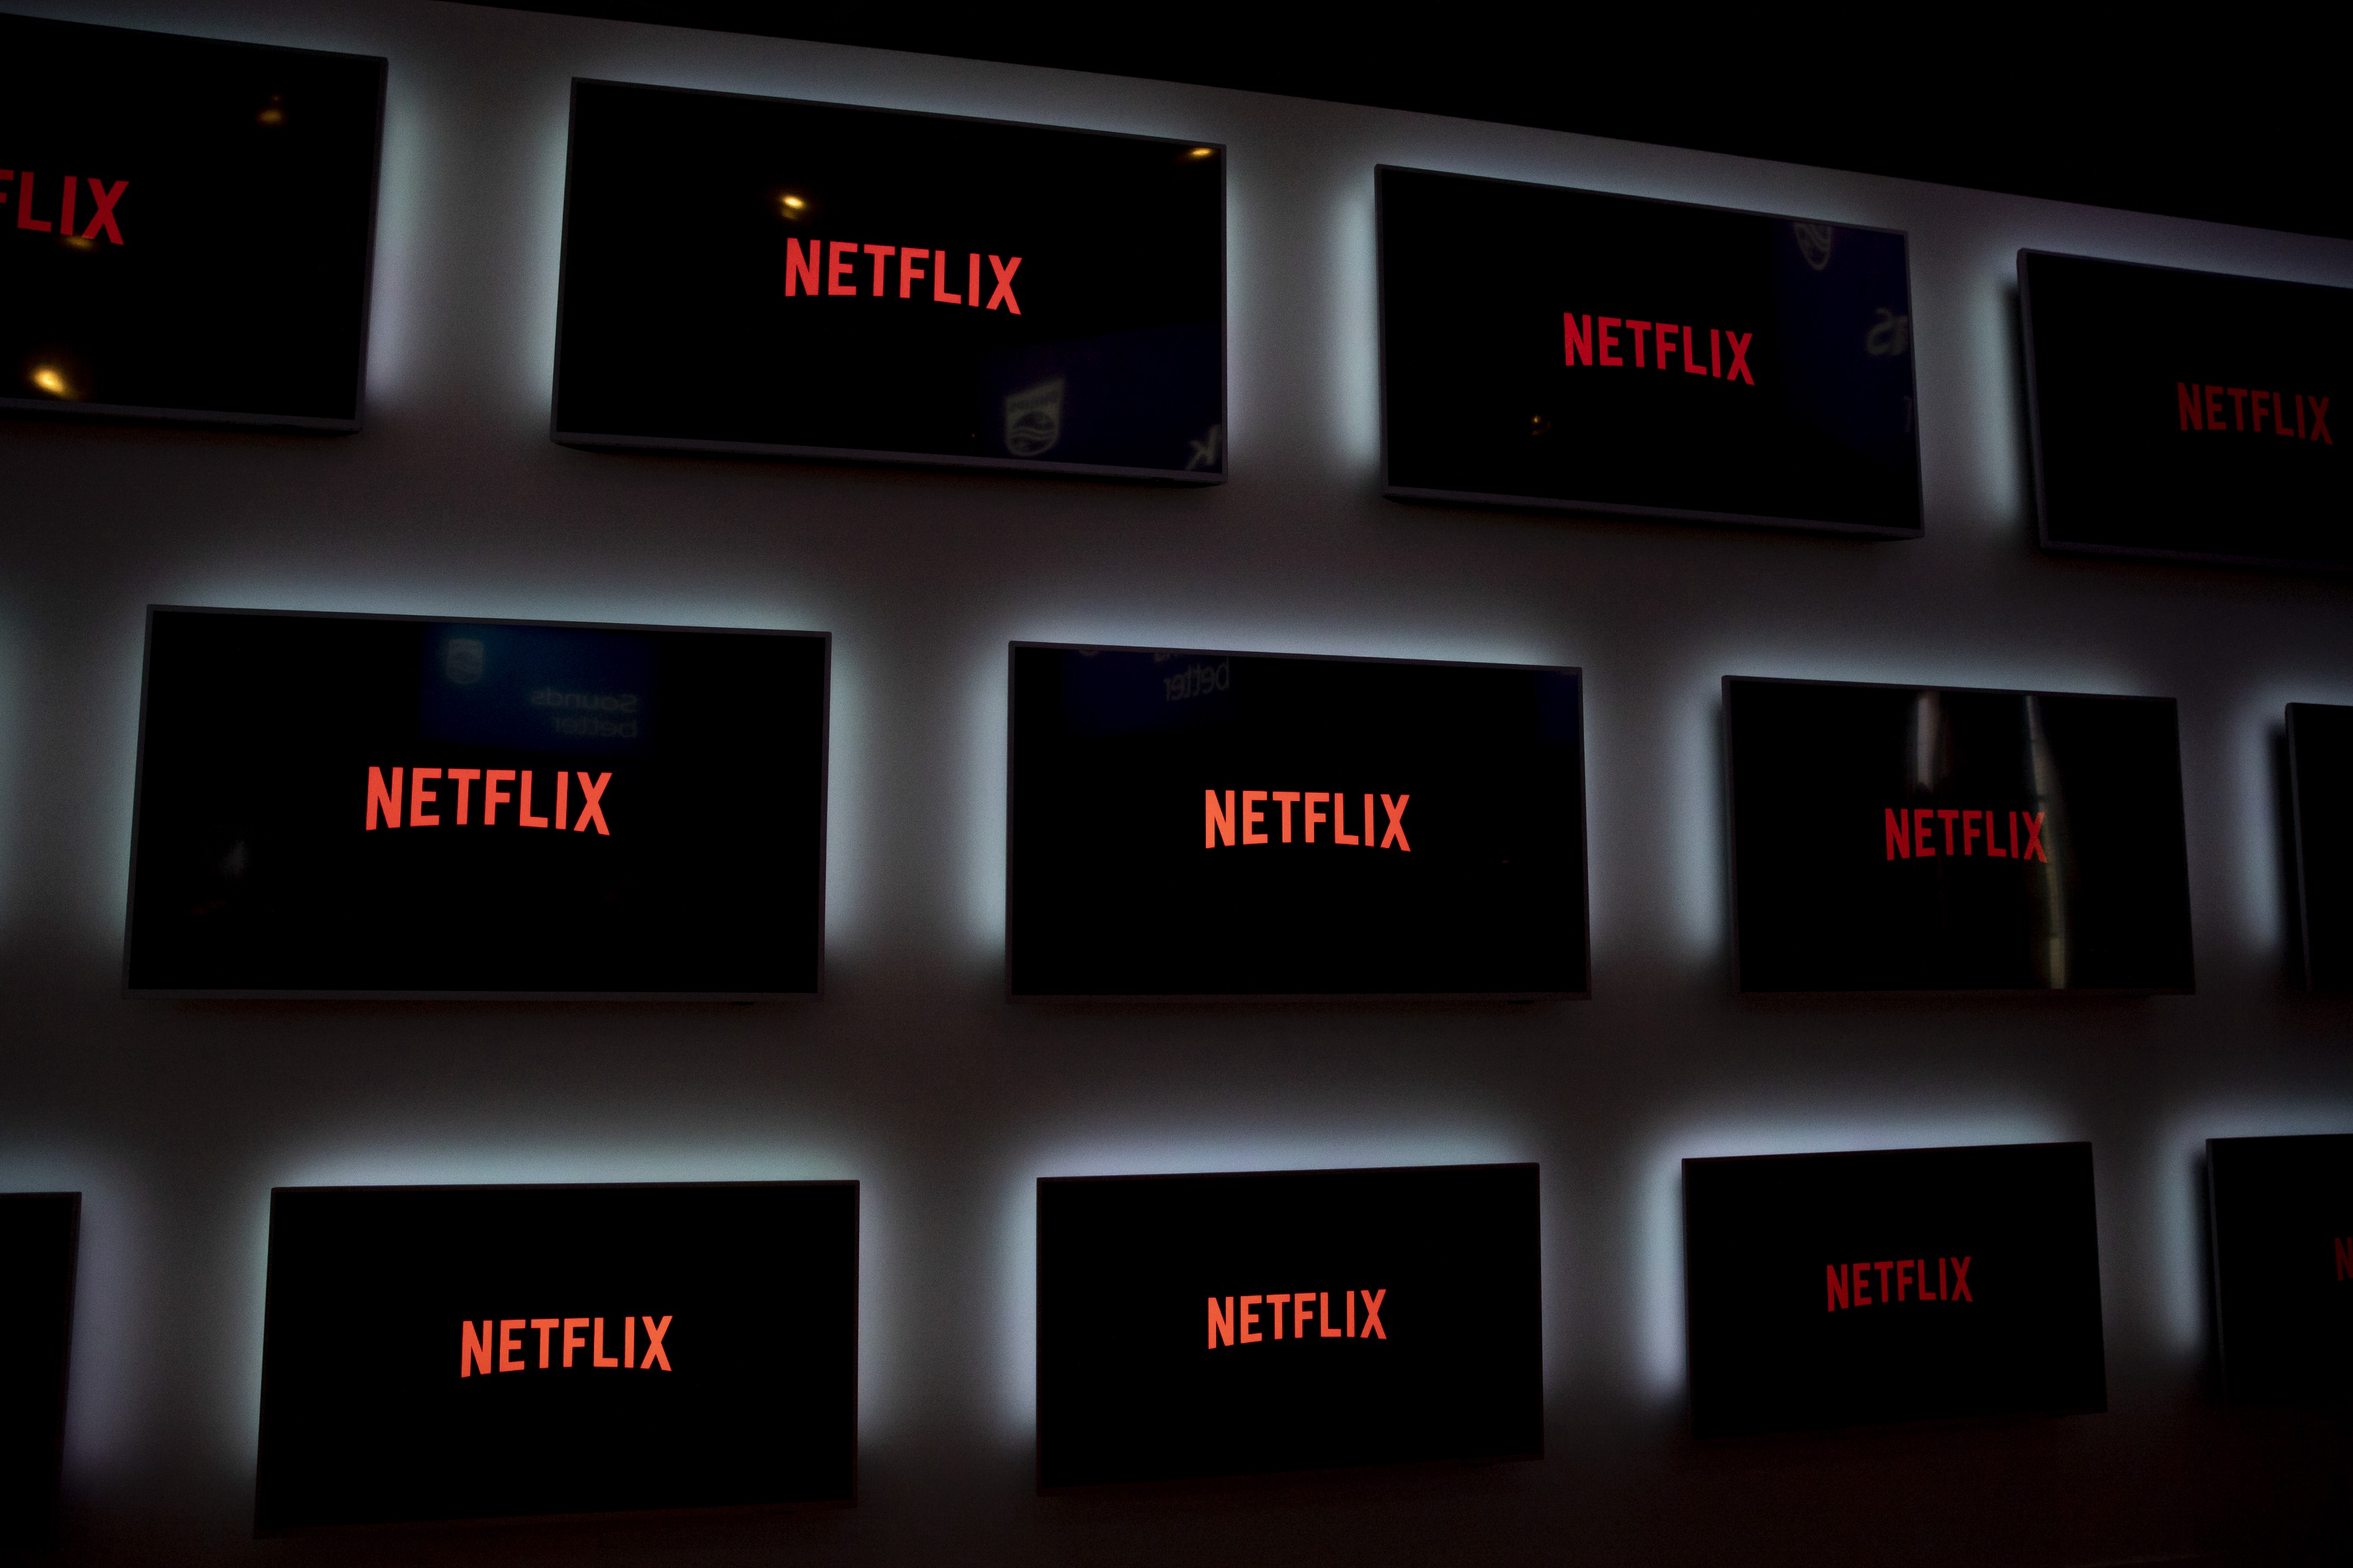 Display monitors with Netflix logo are pictured against a black background.